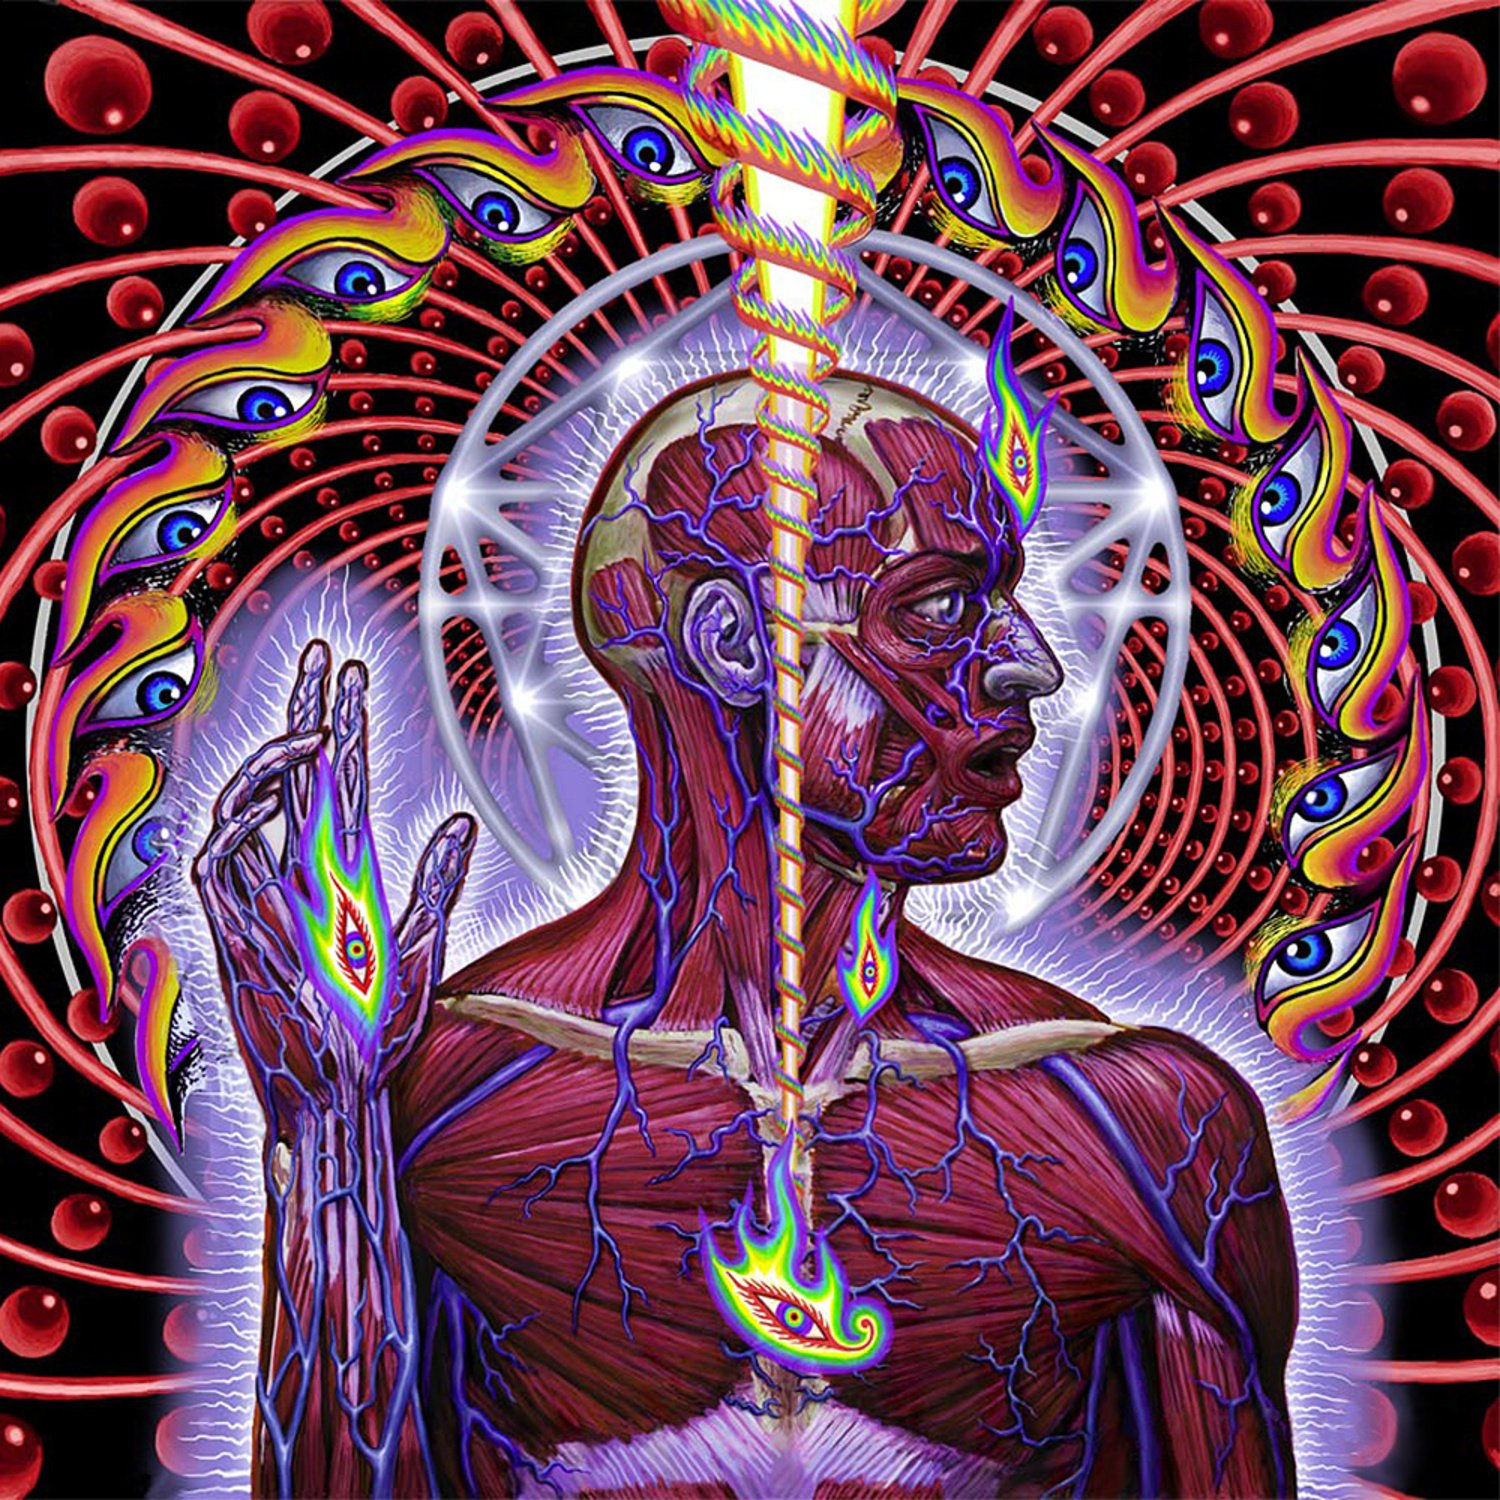 Tool, Lateralus